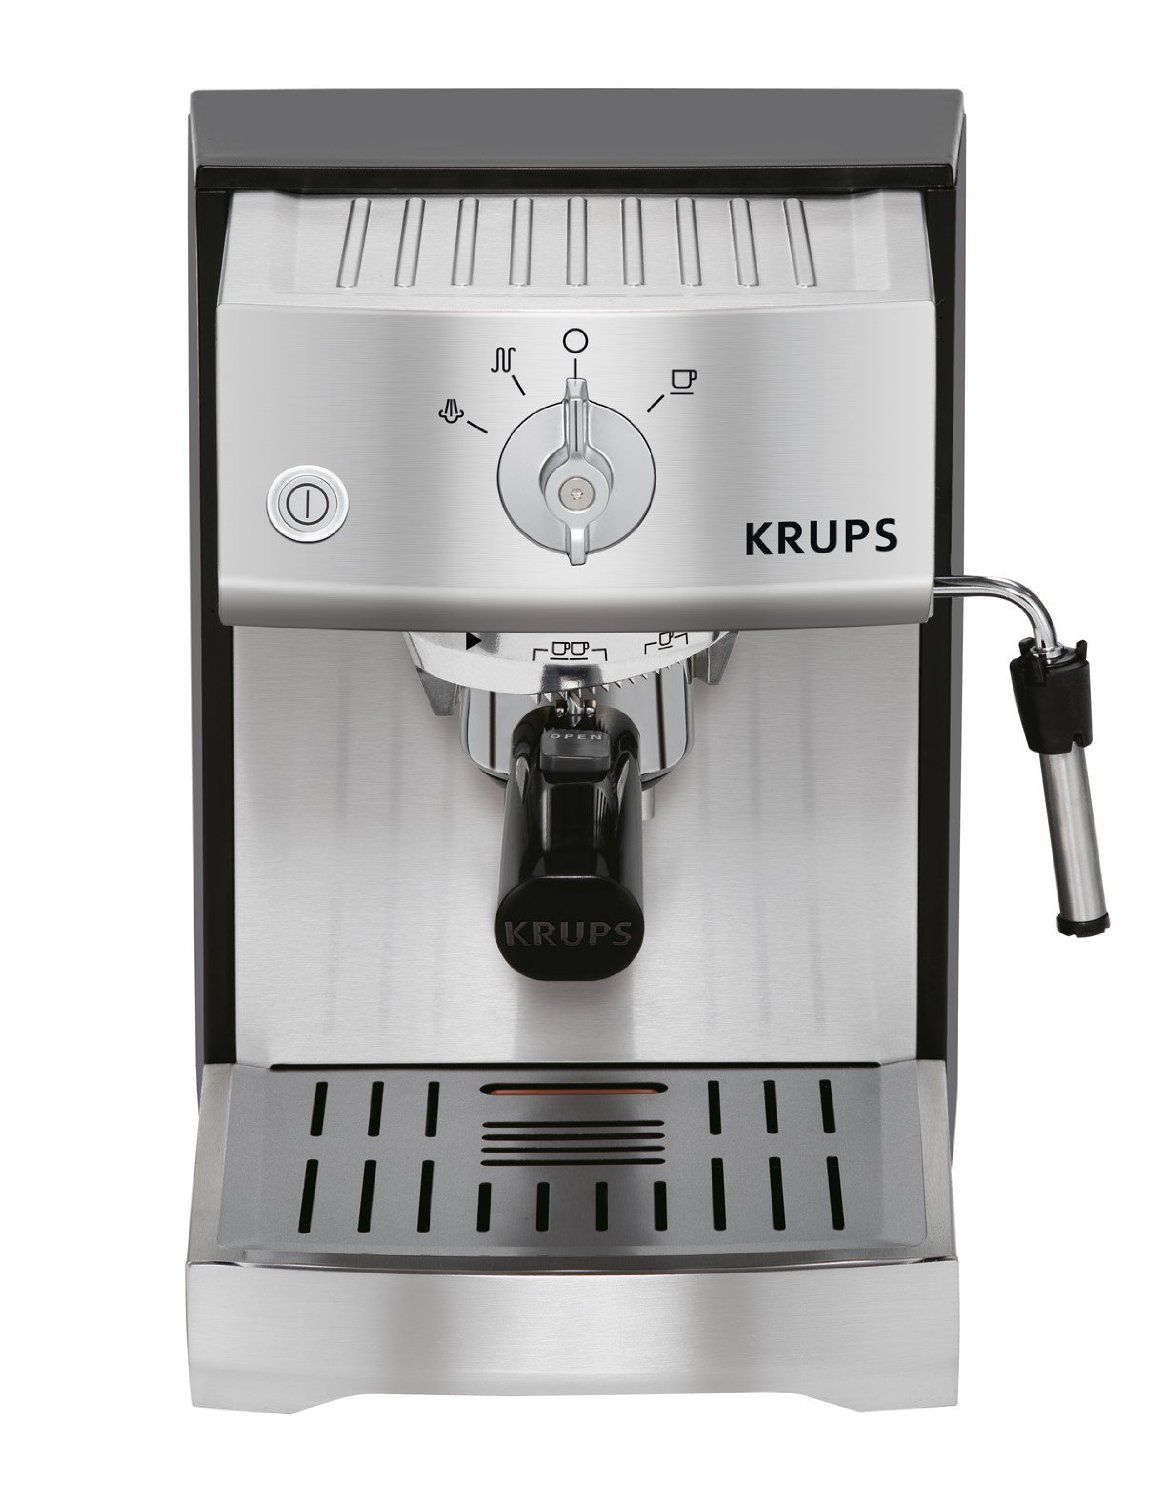 Krups Xp5240 Pump Espresso Machine With Krups Precise Tamp Technology And Stainless Steel Housing Silver To V Best Espresso Machine Espresso Machine Krups